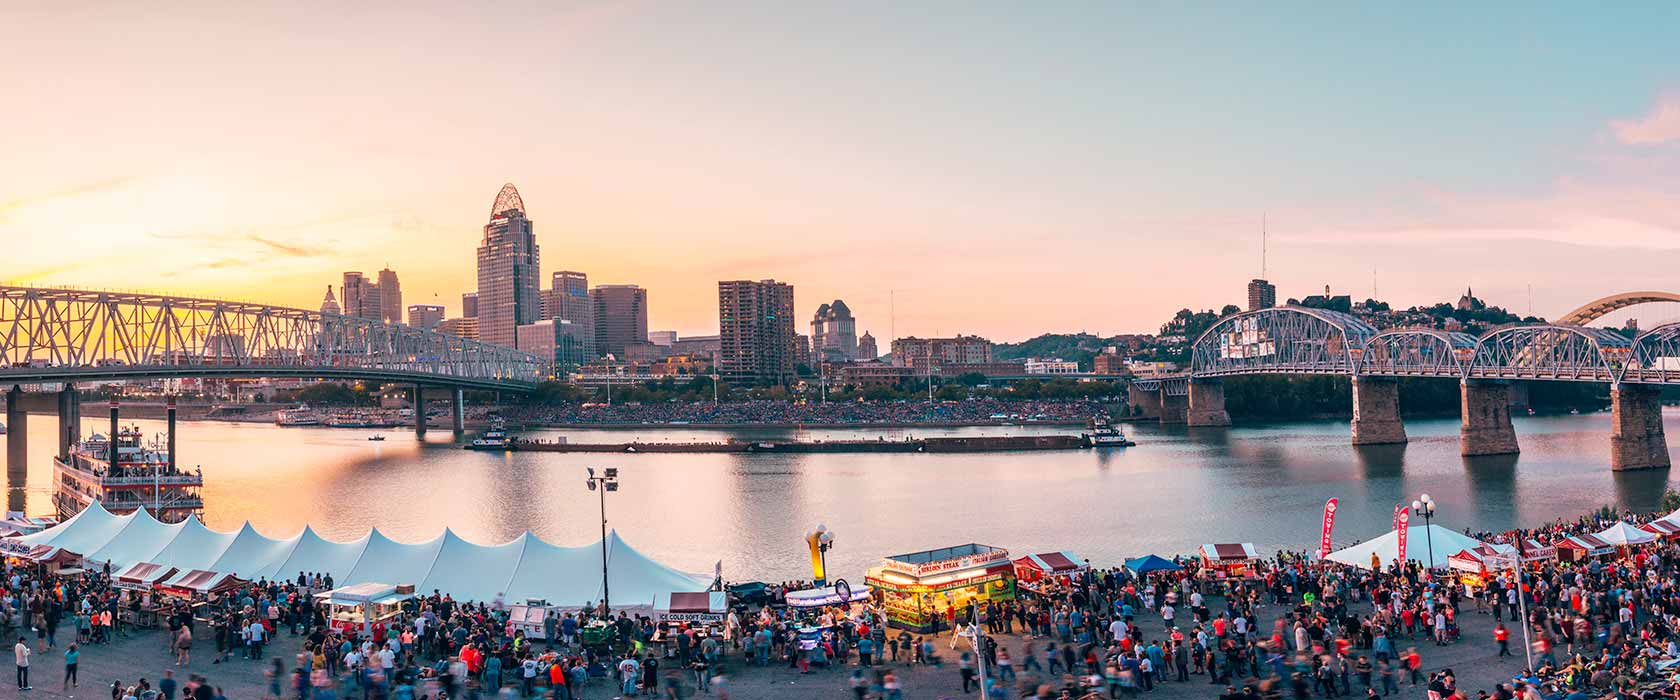 Cincinnati Riverfest for the WEBN/Western Southern fireworks on labor day